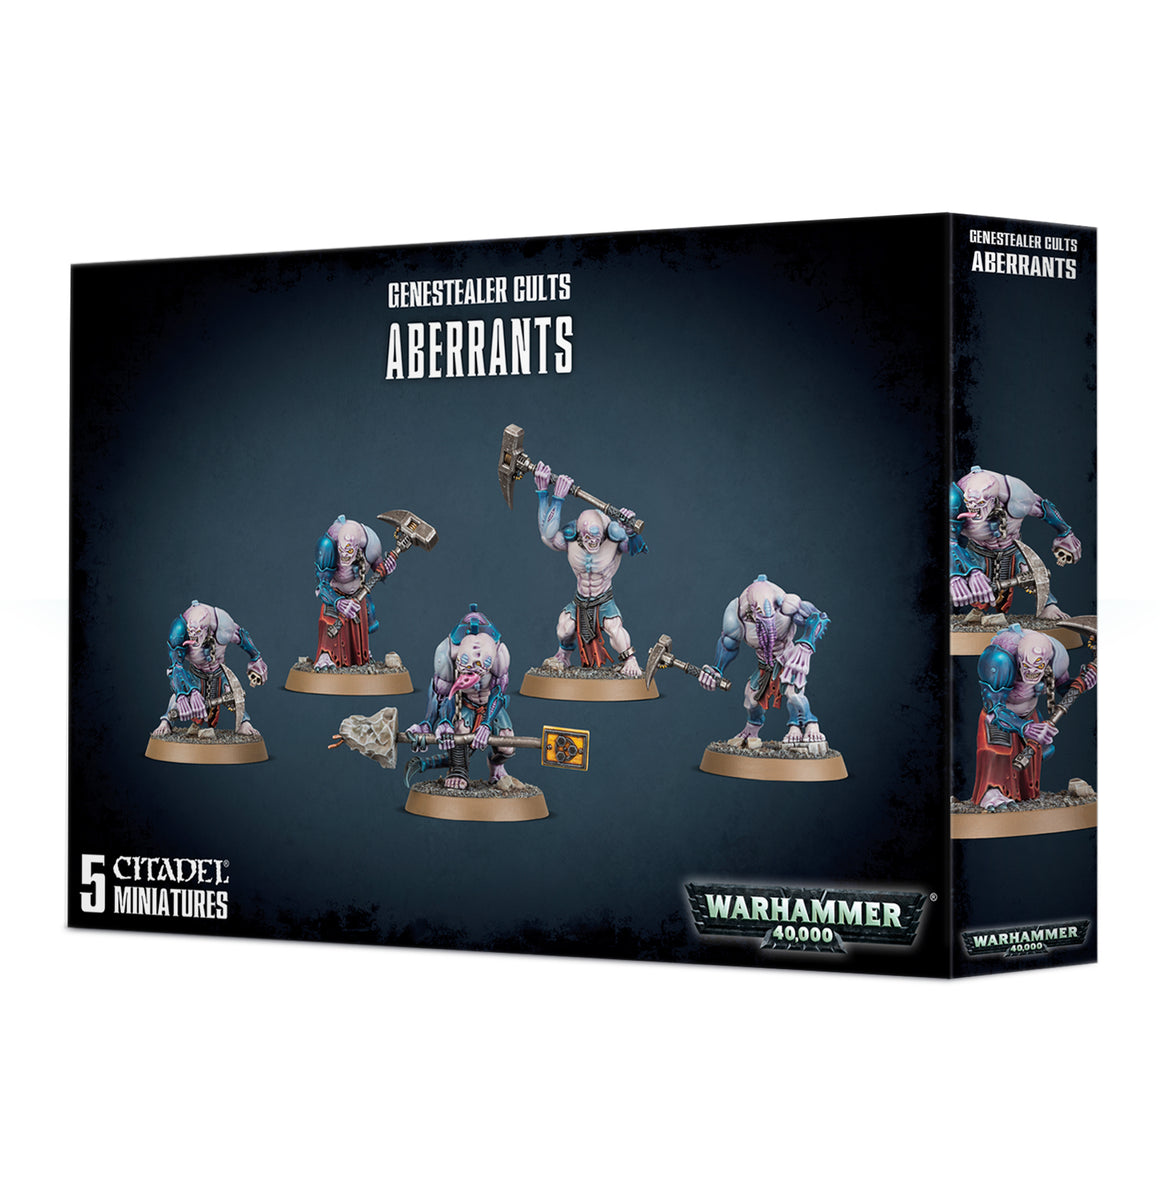 Genestealer Cults Aberrants